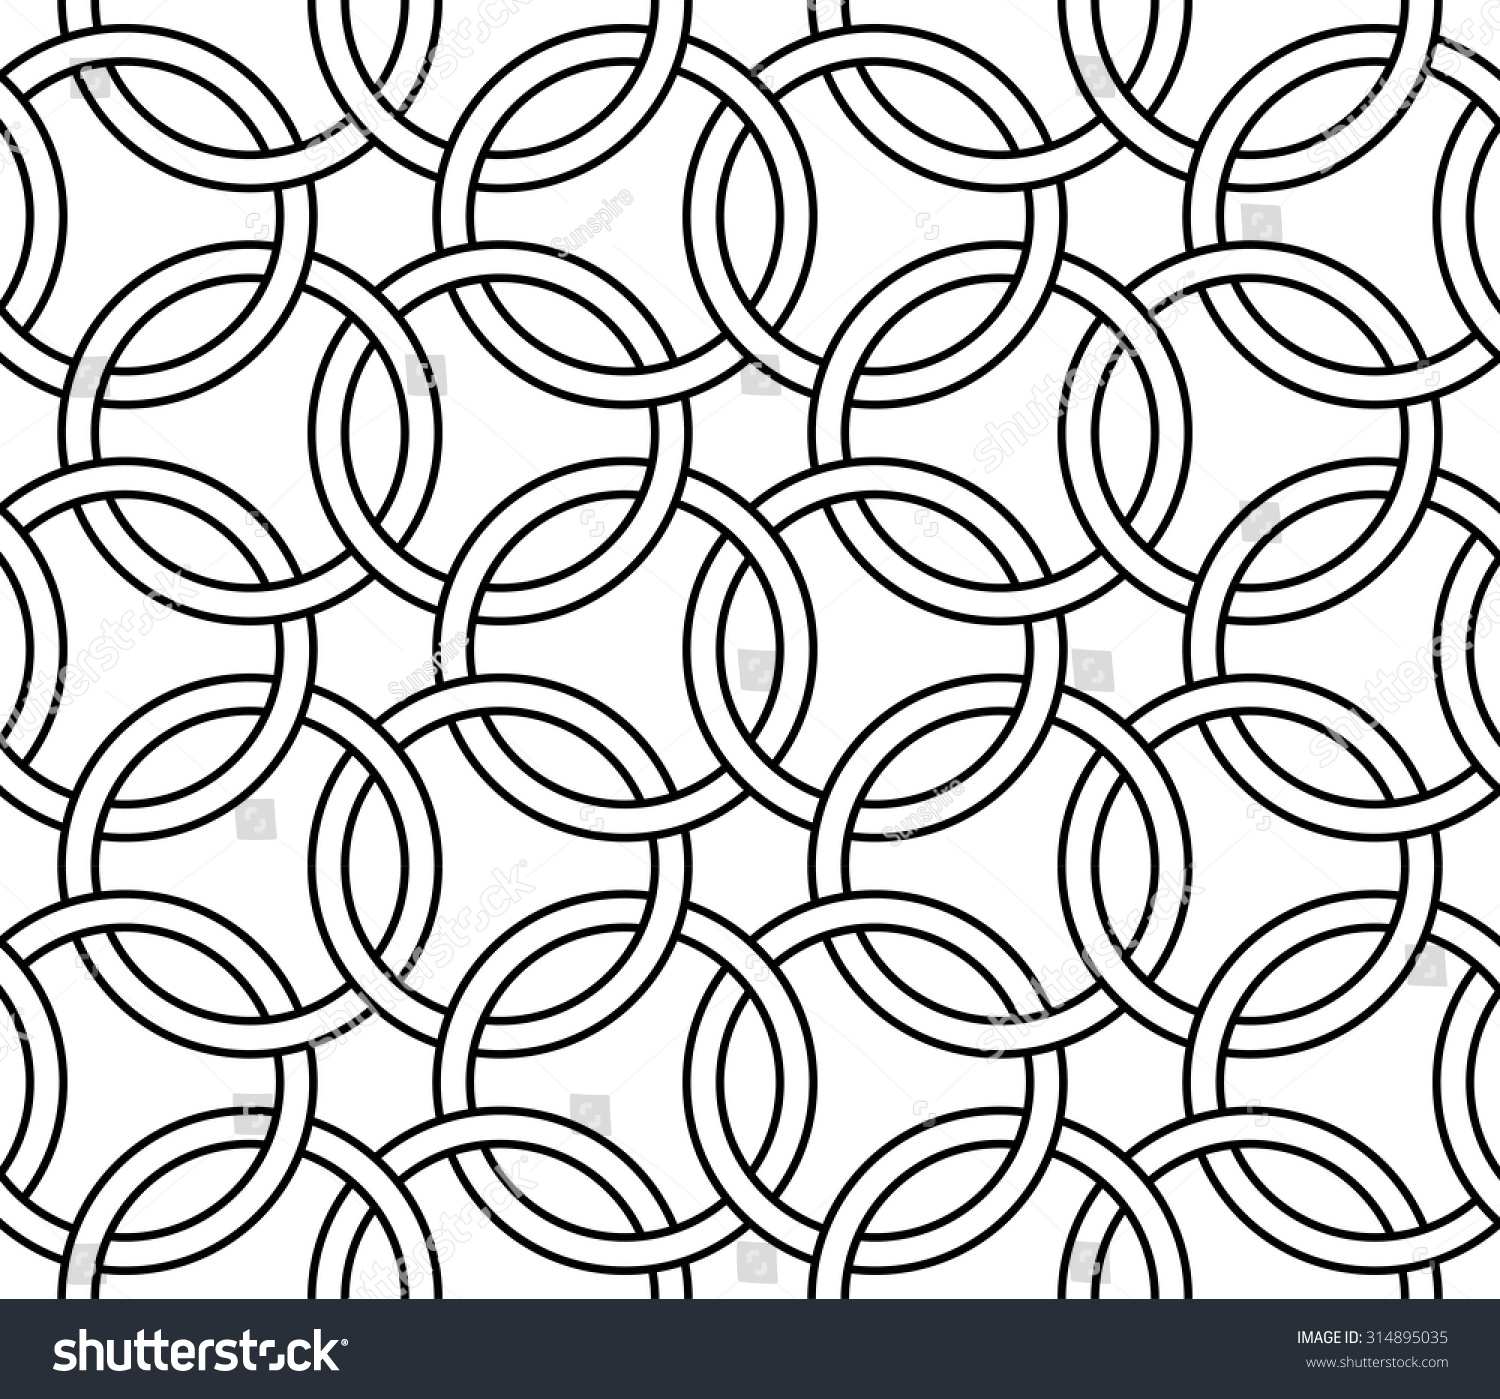 Bed sheet pattern texture - Vector Modern Seamless Pattern Geometry Circles Black And White Textile Print Stylish Background